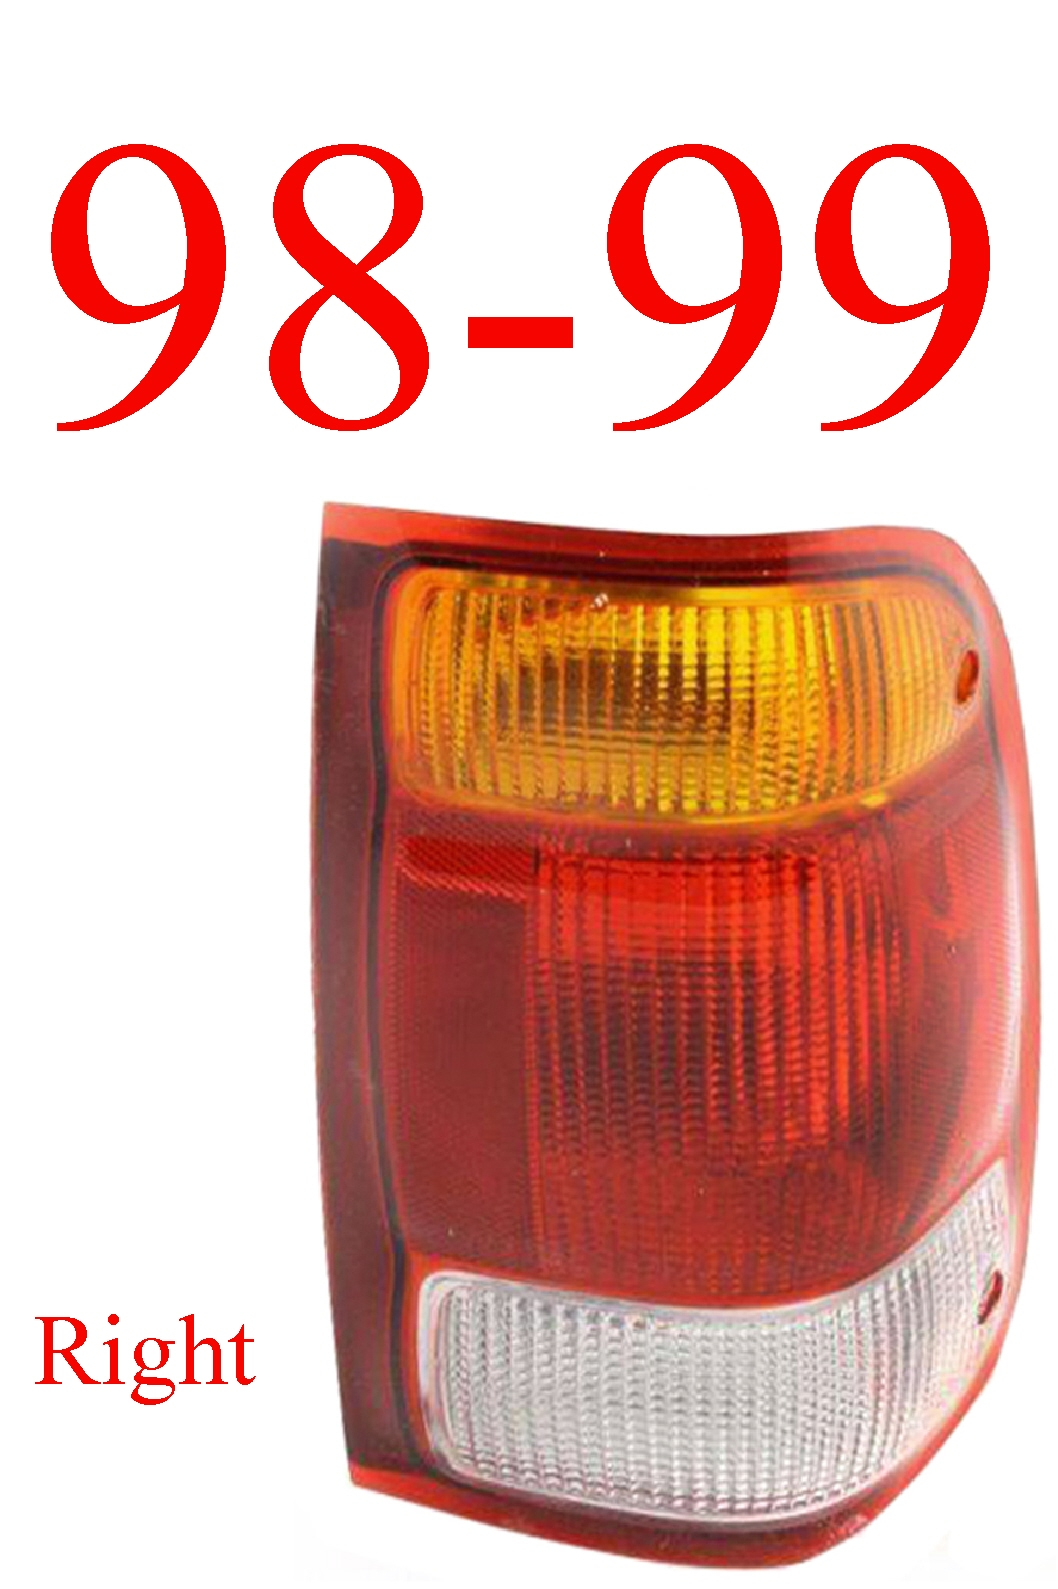 98-99 Ford Ranger Right Tail Light Assembly